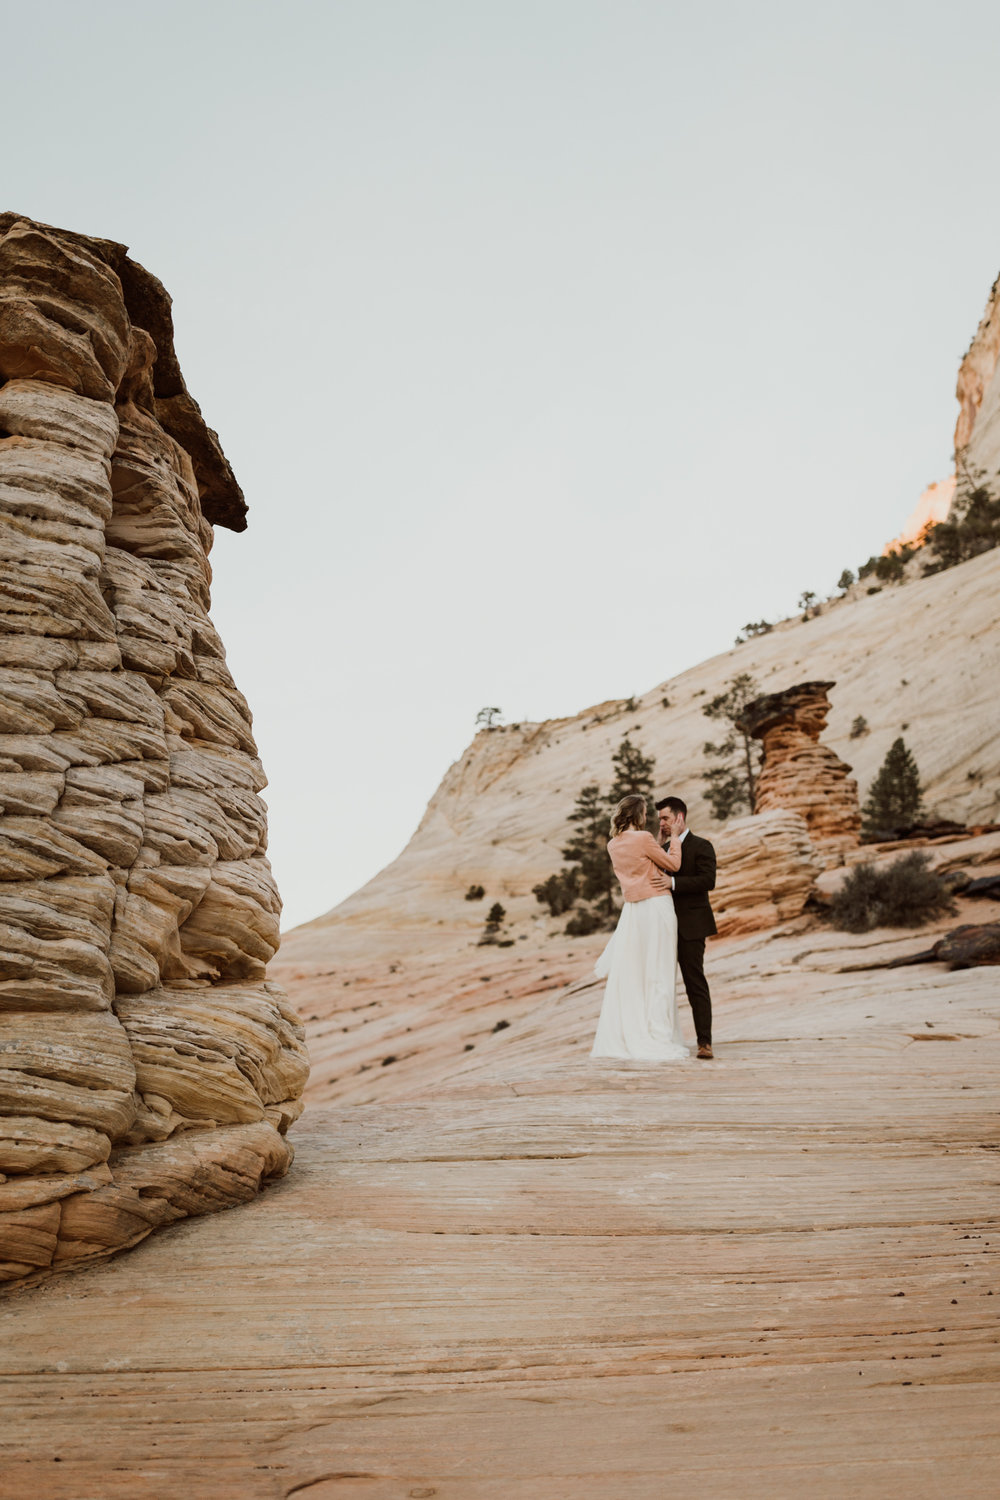 zion-national-park-wedding-36.jpg